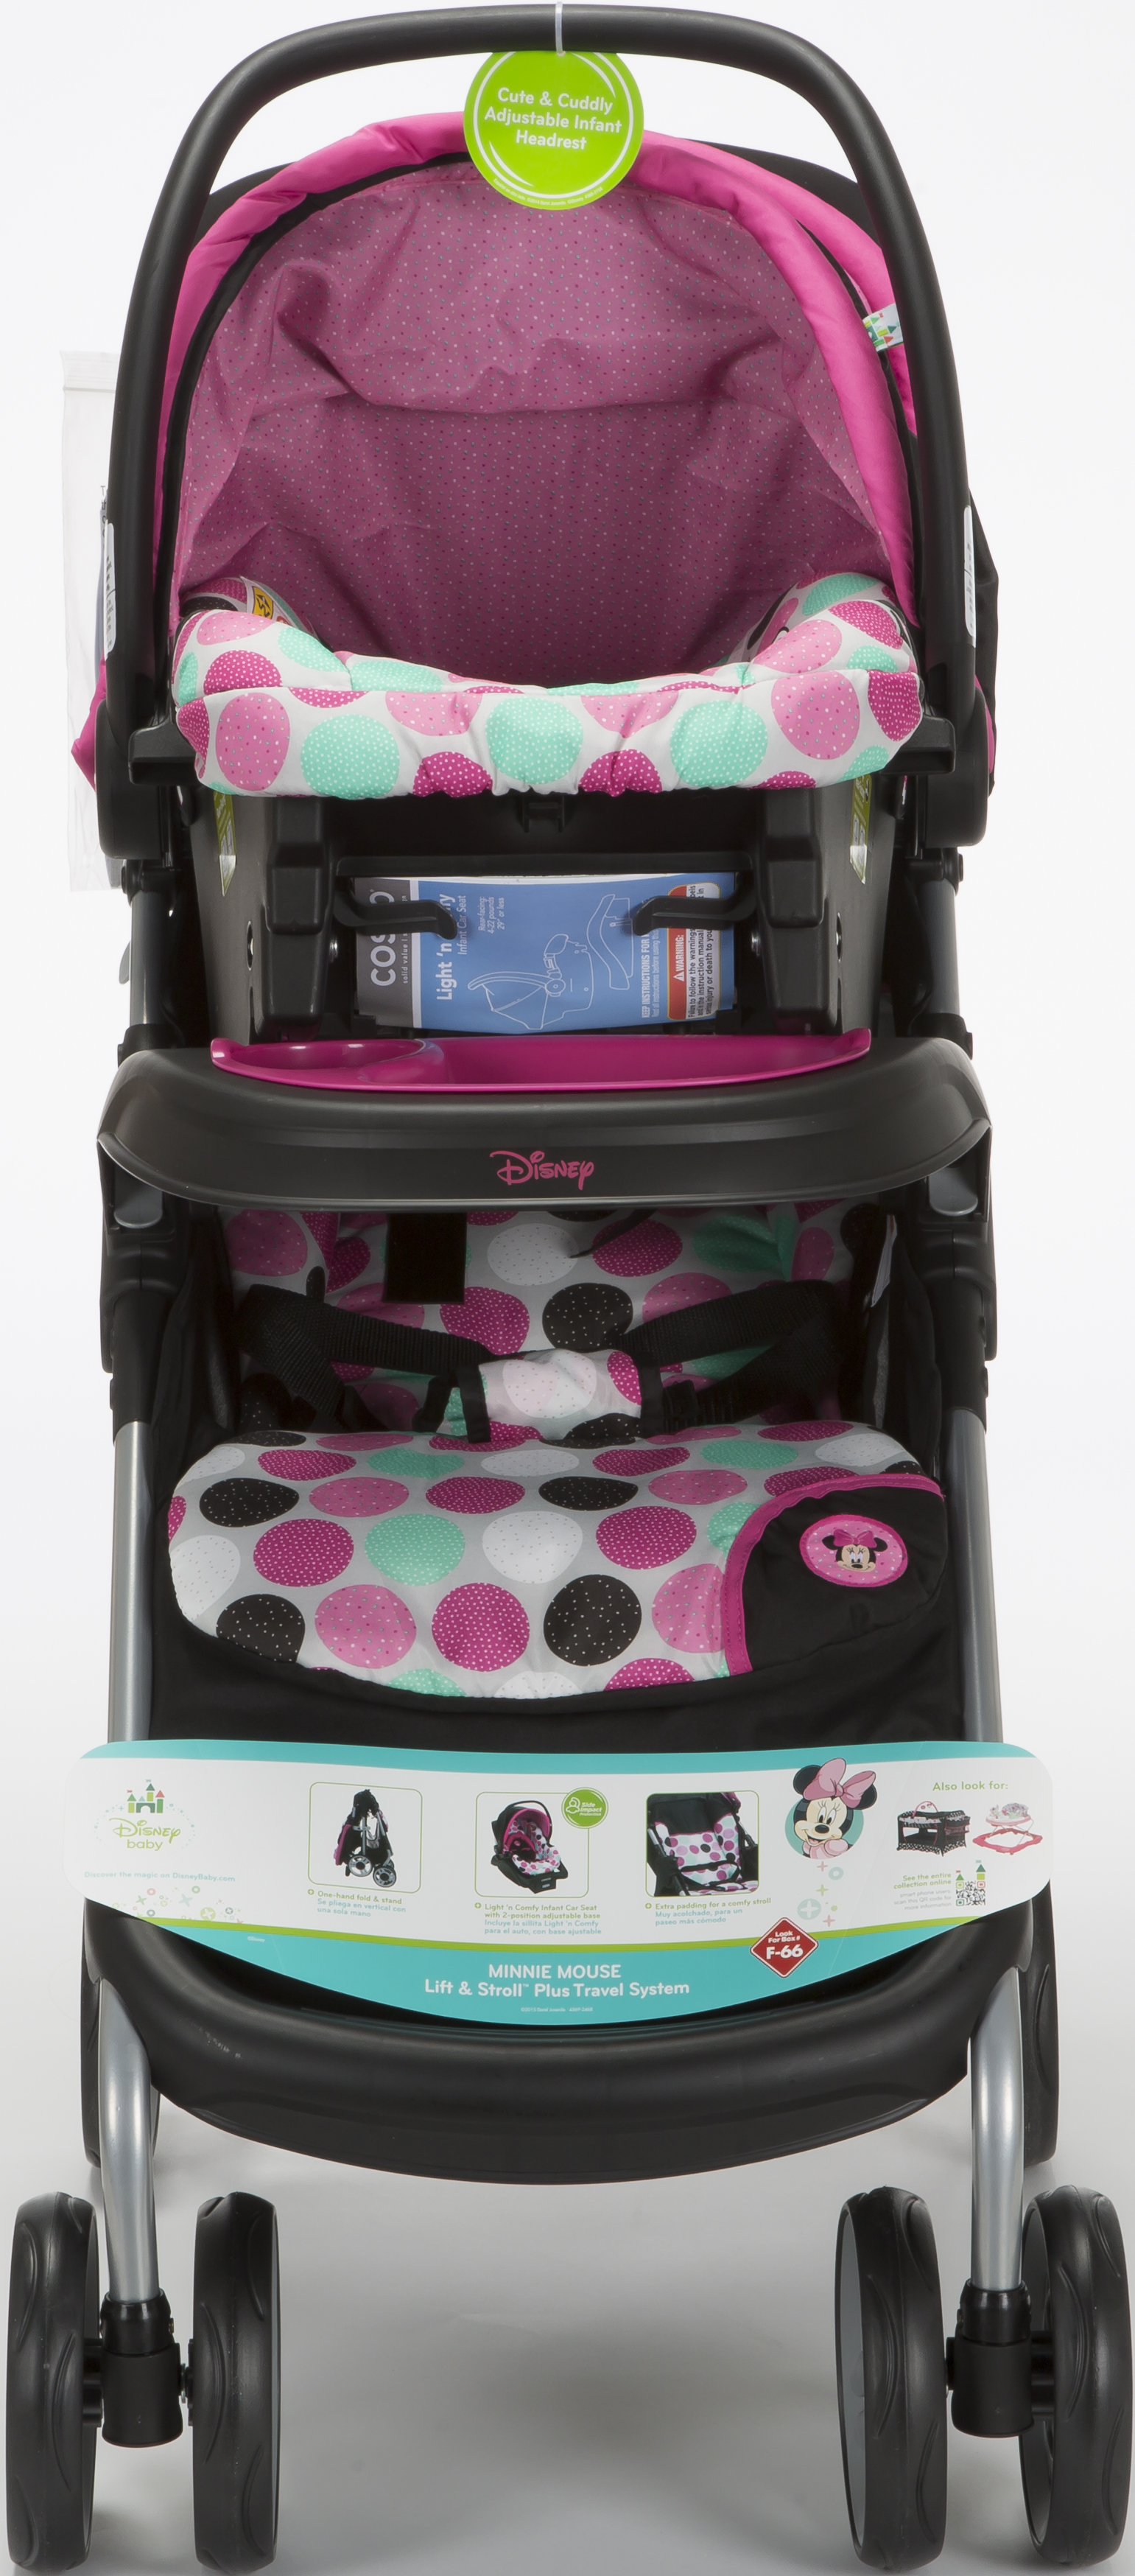 Disney Baby Minnie Mouse Lift StrollTM Plus Travel System Coral Flowers